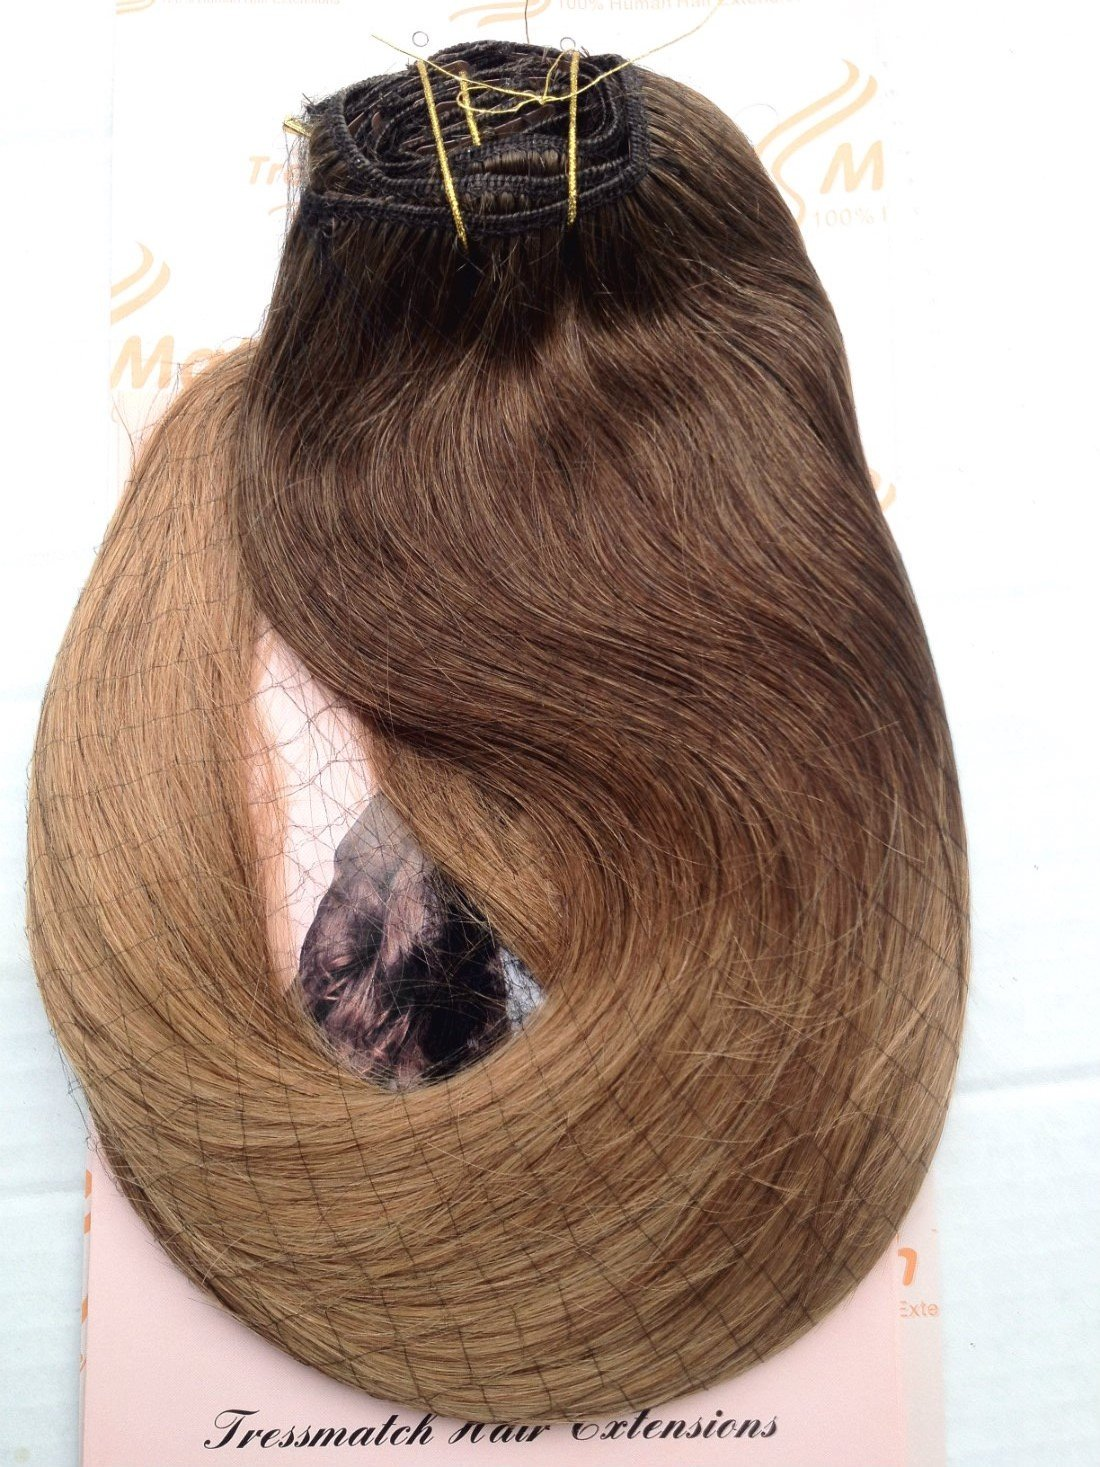 """TRESSMATCH 20""""(22'') Clip in Remy (Remi) Human Hair Extensions Ombre/dip Dye Chestnut/medium Brown to Caramel Blonde 10 Pieces(pcs) Thick to Ends Full Head Volume Set [Set Weight:5.6oz/160grams]"""